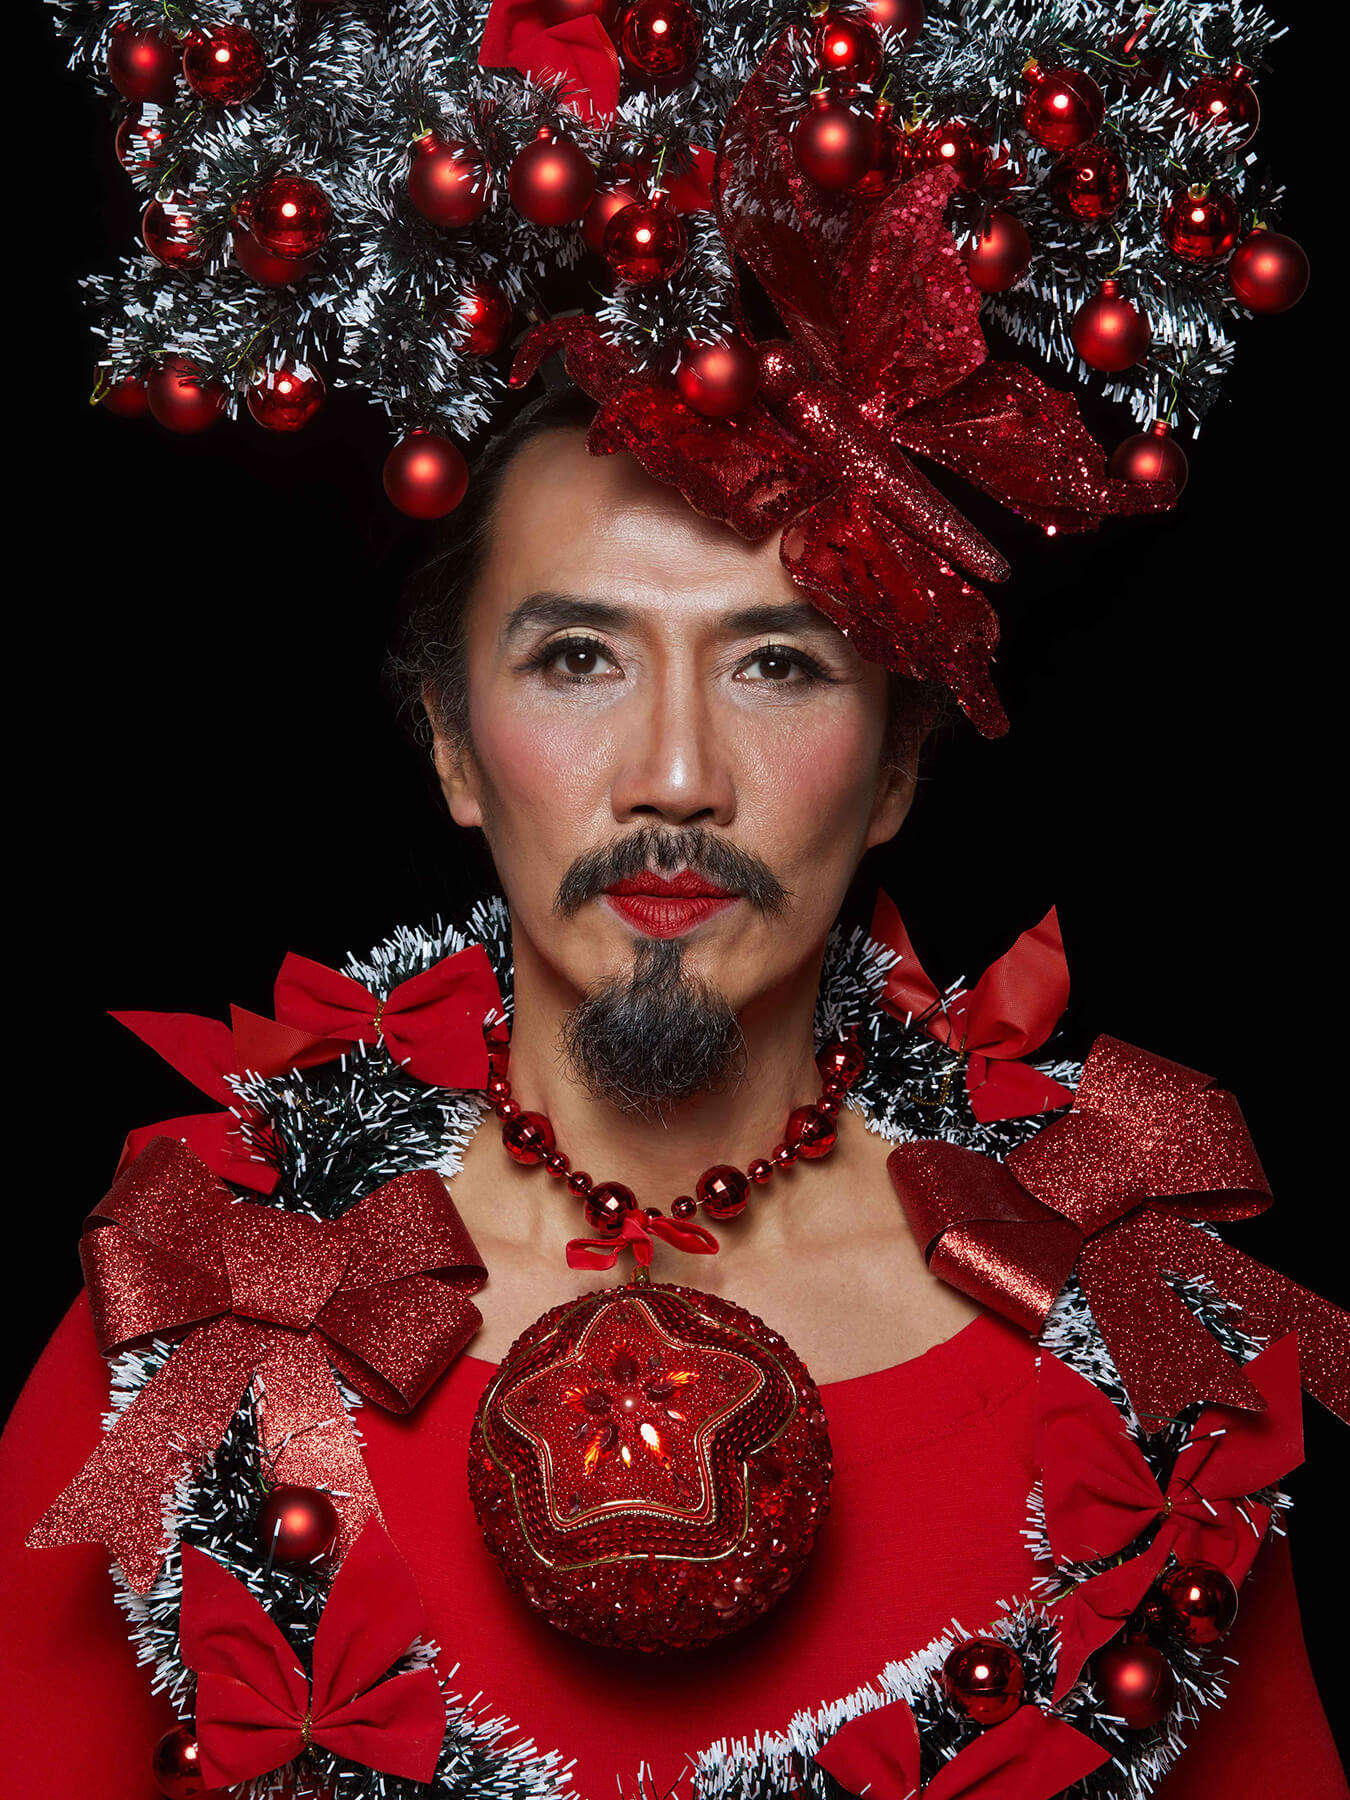 22 Dec 2017 Derong is decked out in red and covered in Christmas ornaments